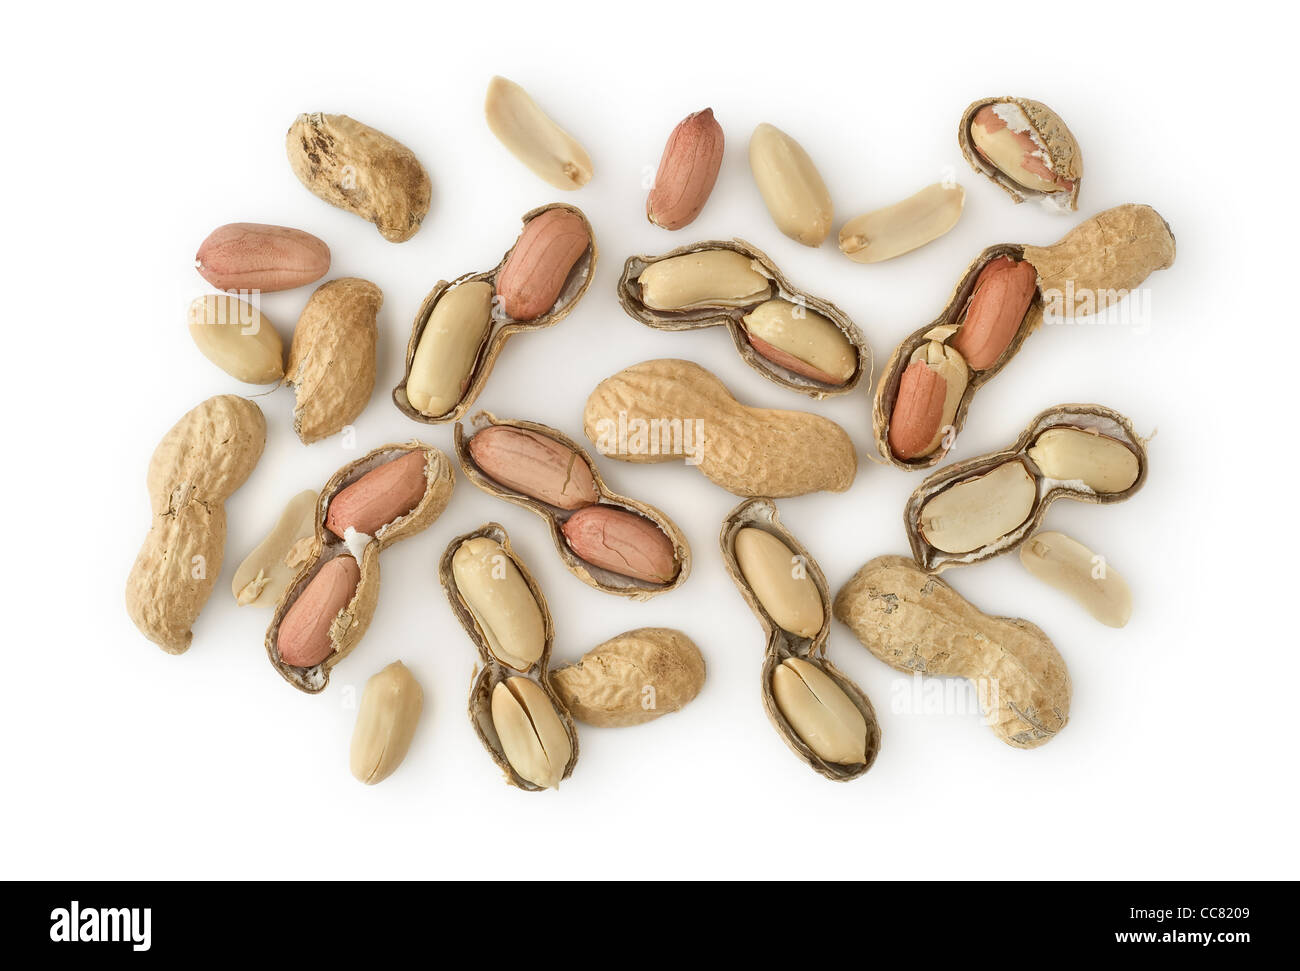 Peanuts as Healthy and Nutritious Dietary Supplement - Stock Image